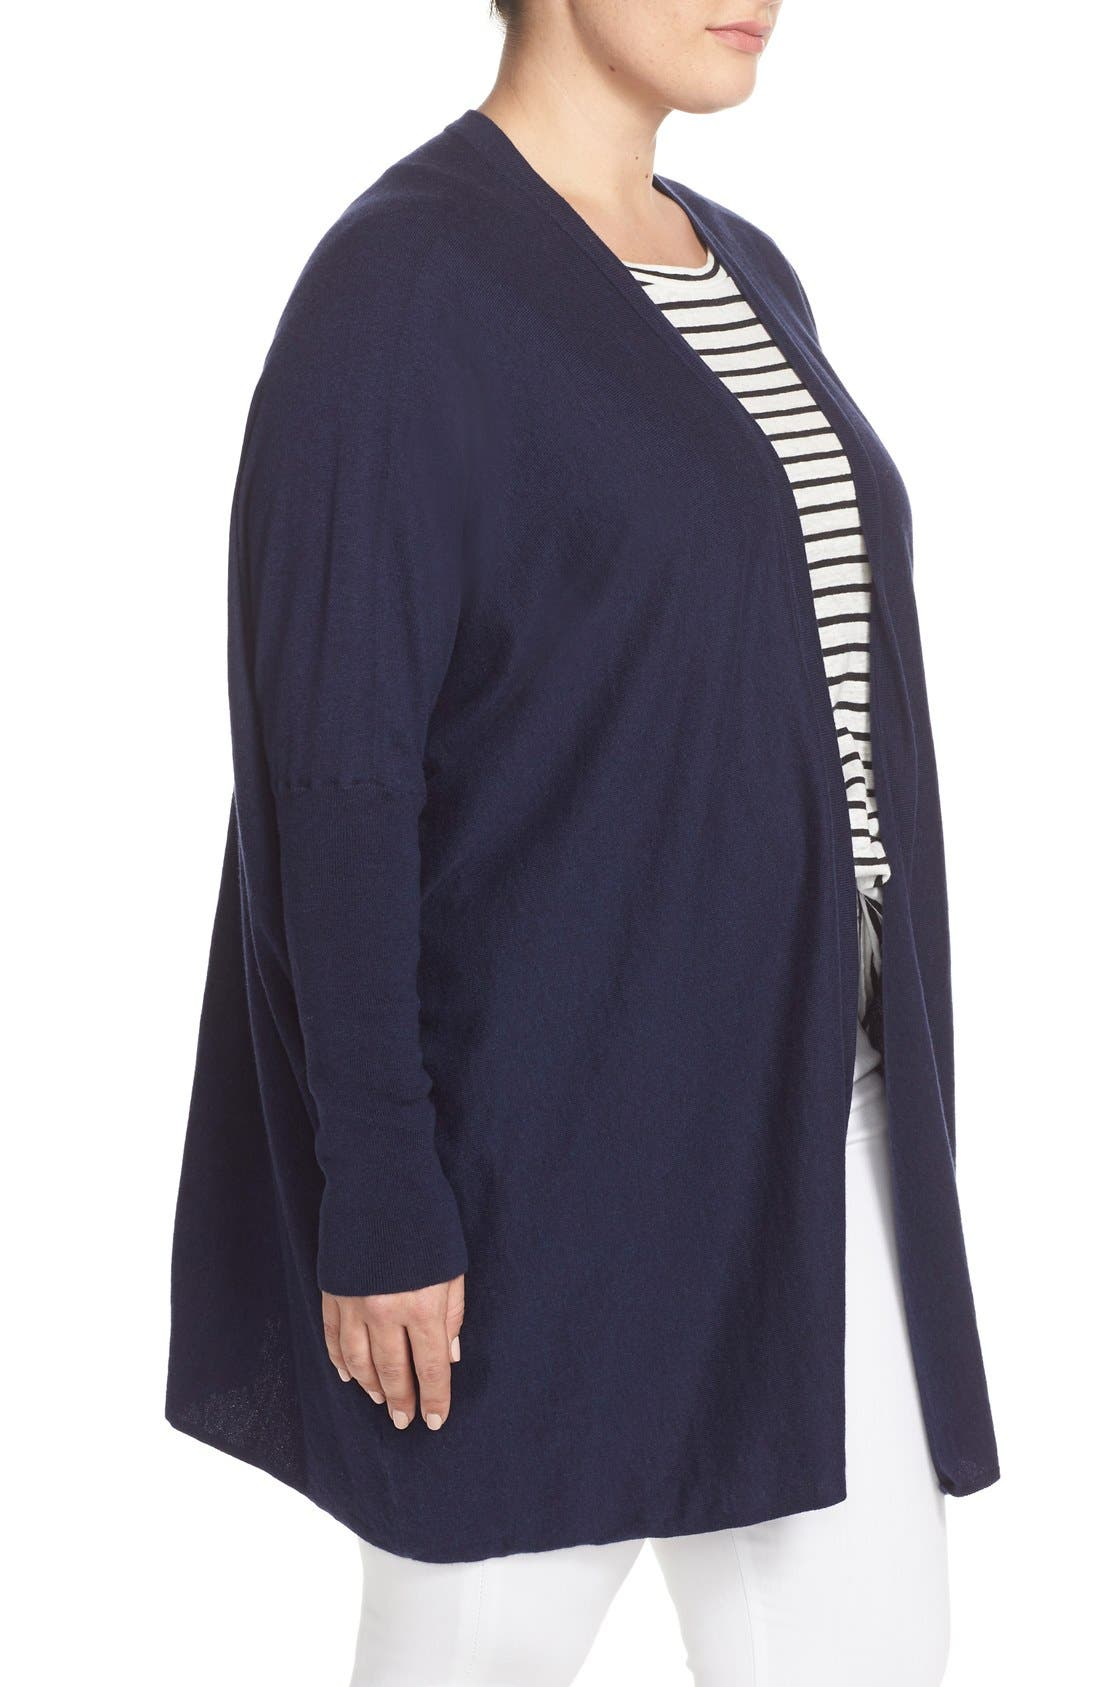 'Darma' Cotton & Cashmere Knit Cardigan,                             Alternate thumbnail 3, color,                             Melange Navy